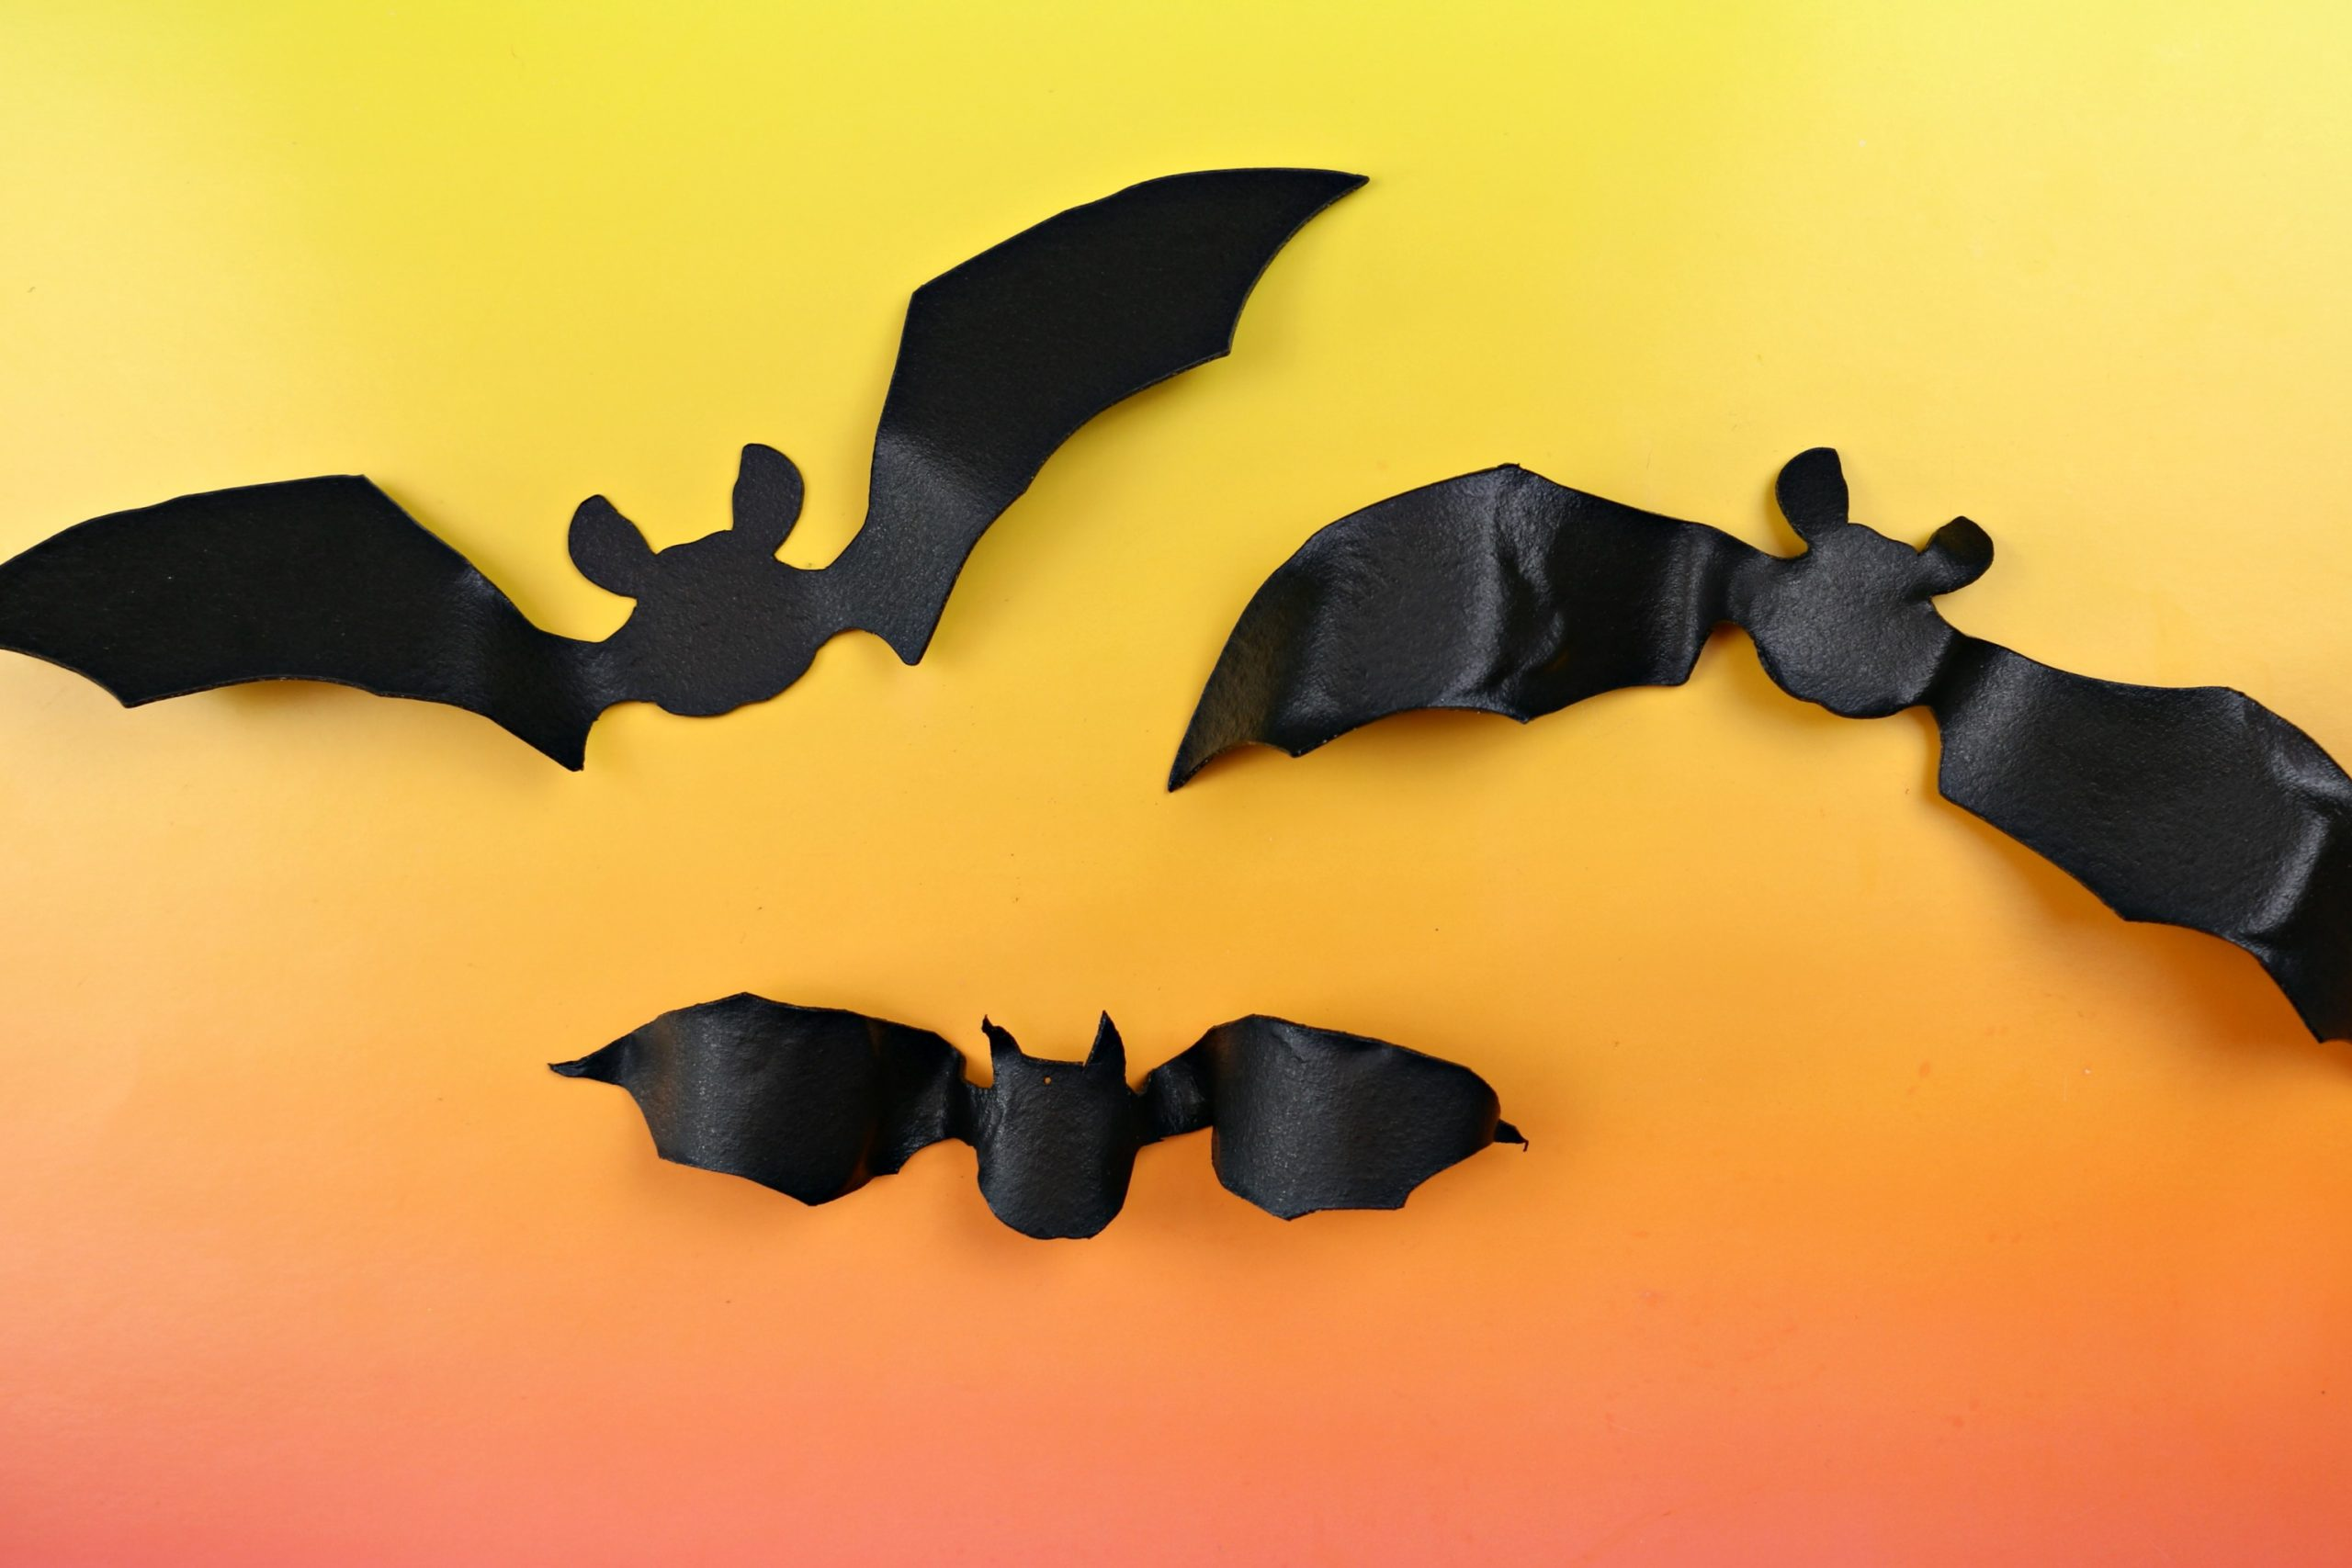 black bat shape cut out of worlba plastic